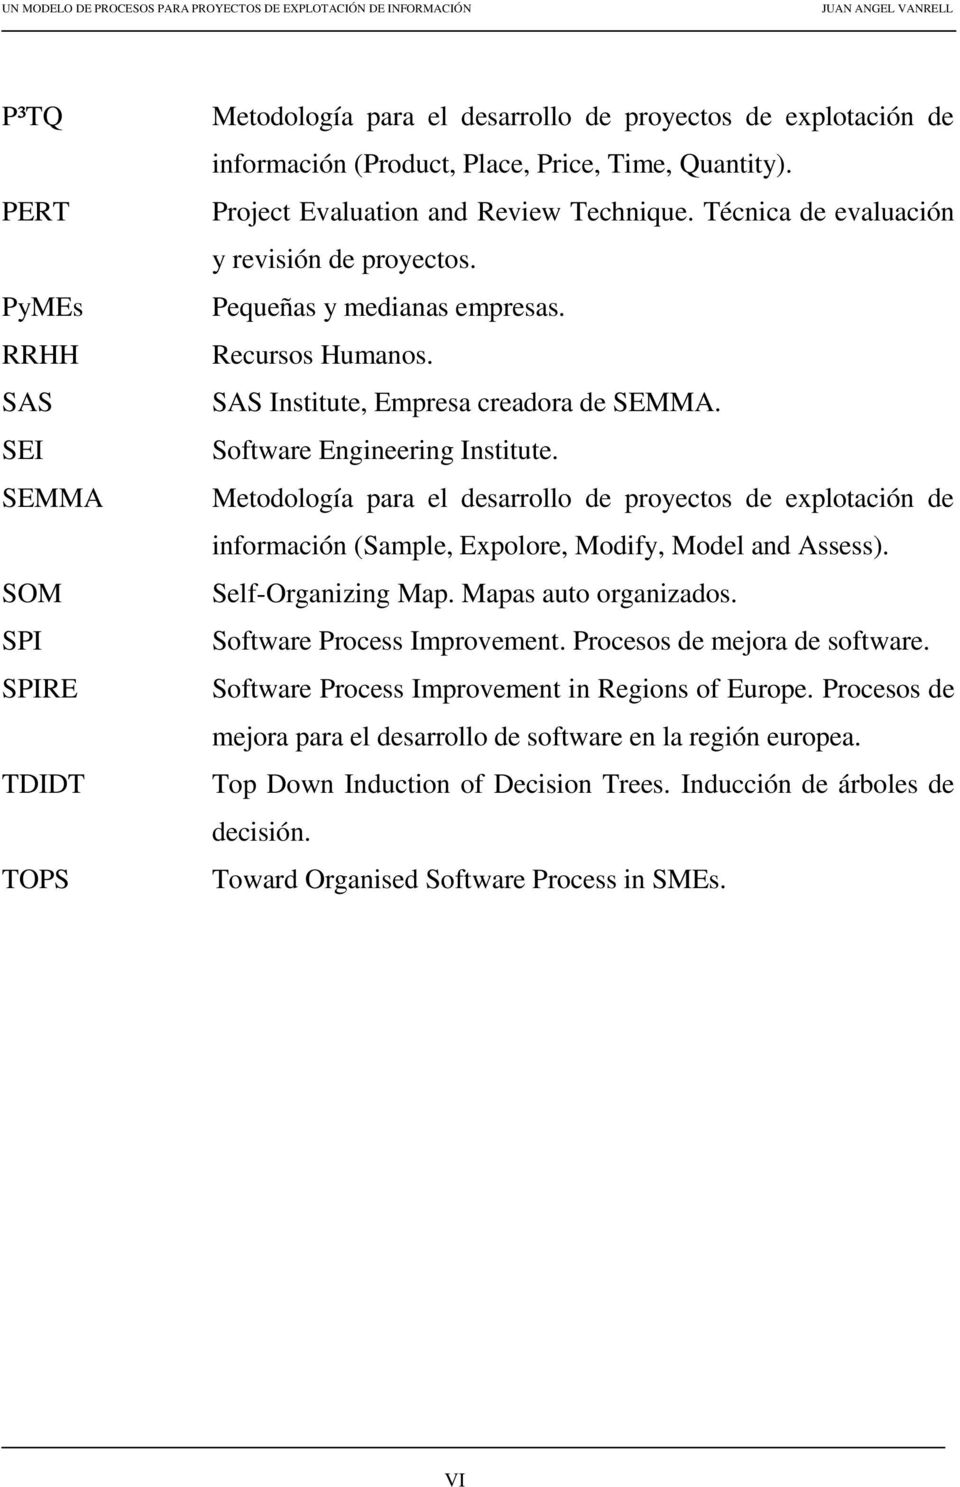 Software Engineering Institute. Metodología para el desarrollo de proyectos de explotación de información (Sample, Expolore, Modify, Model and Assess). Self-Organizing Map. Mapas auto organizados.